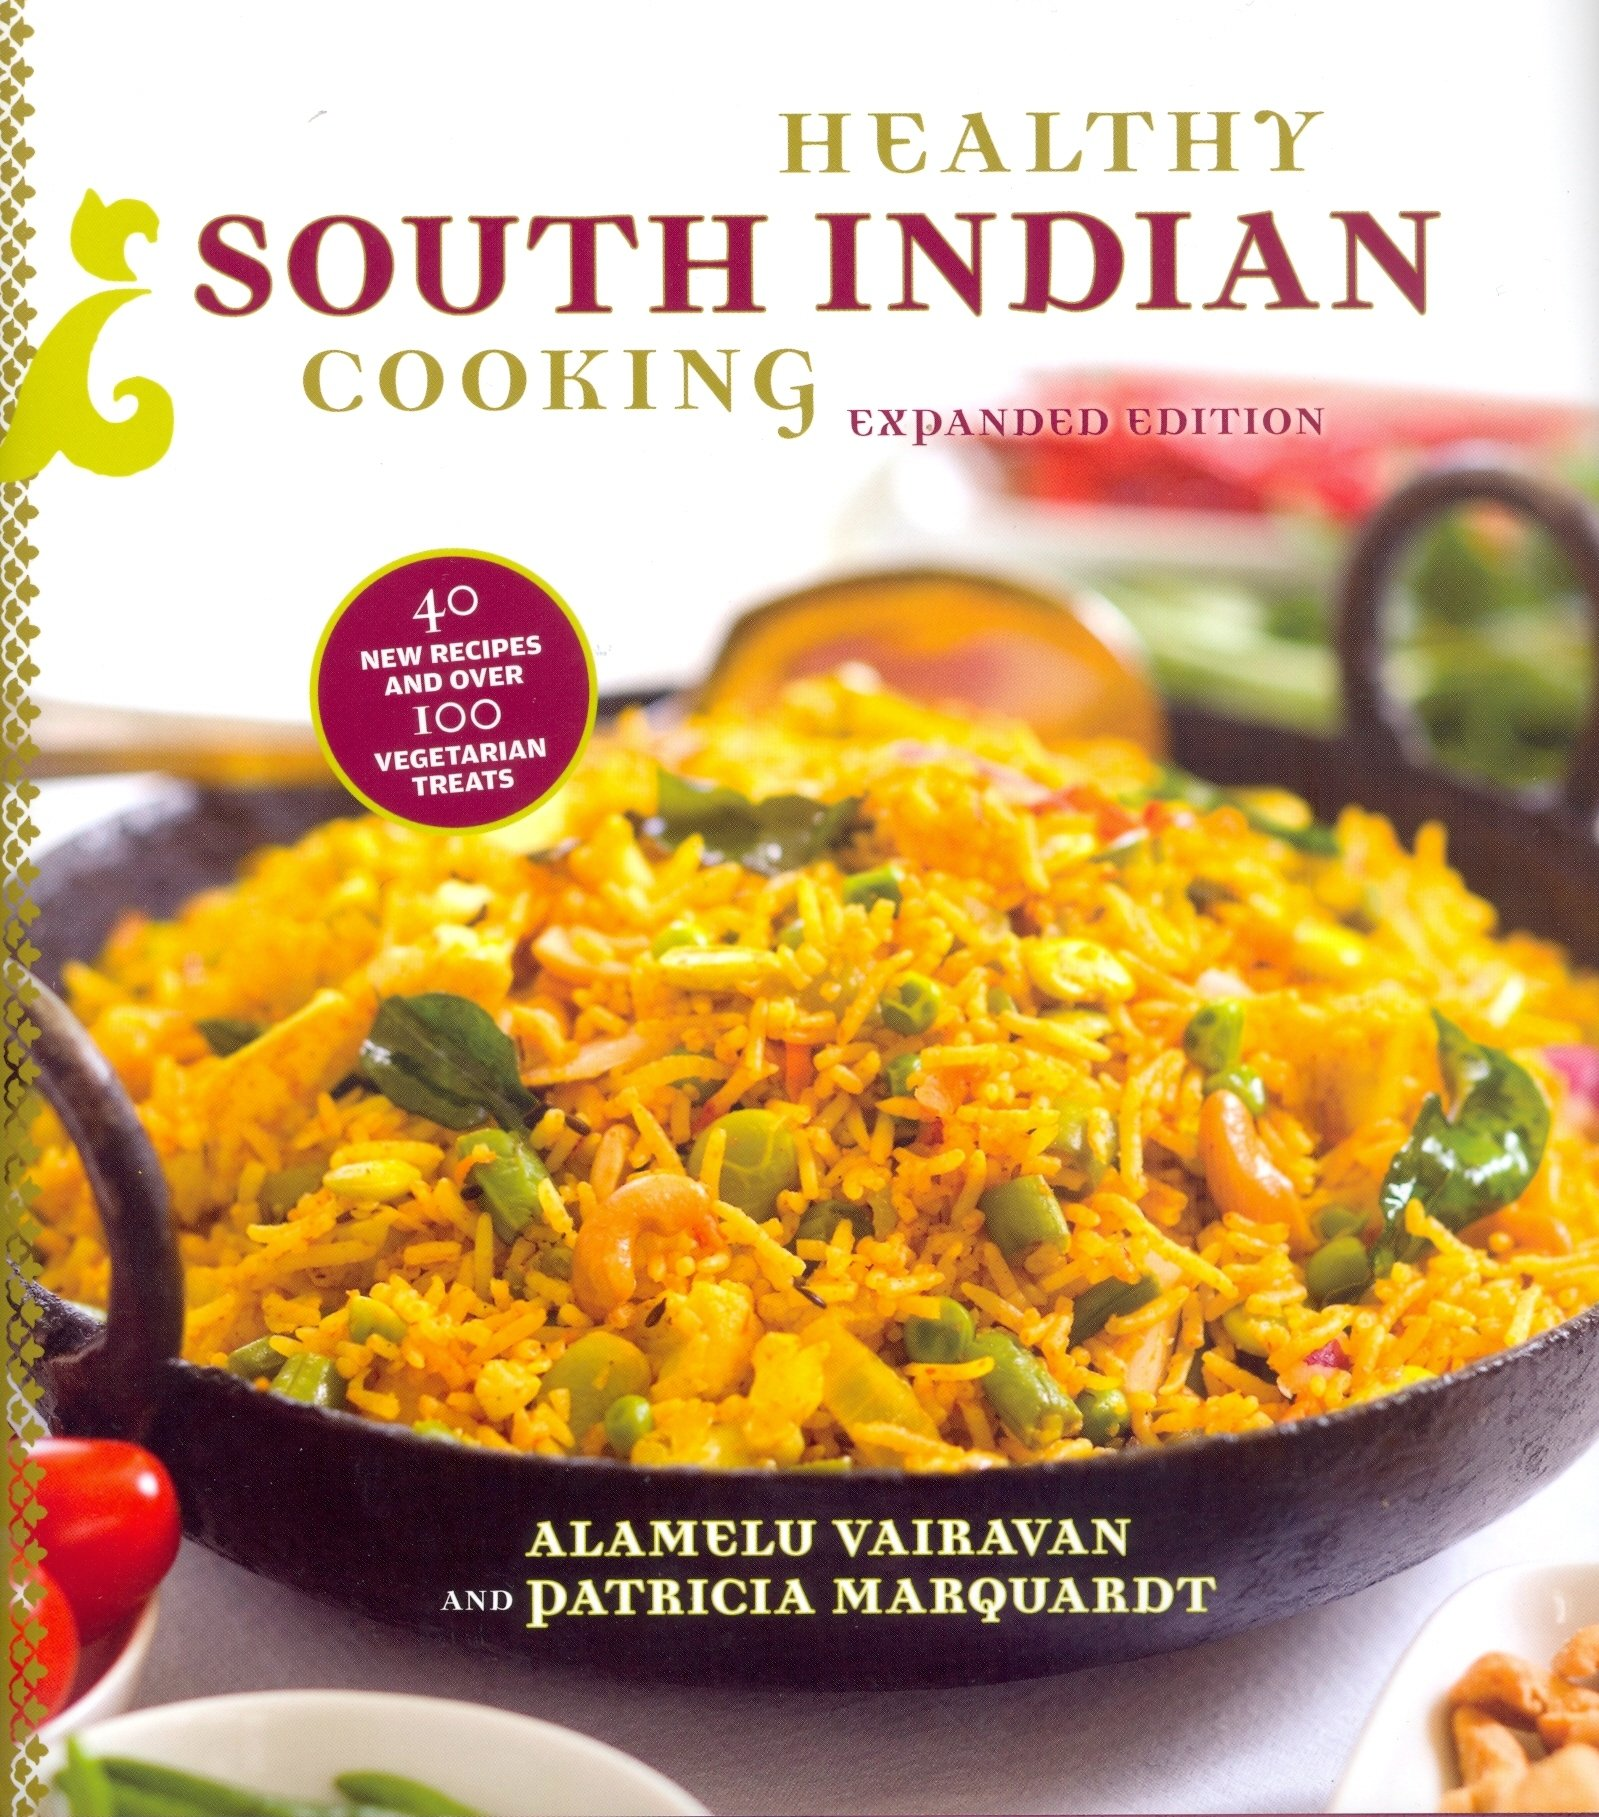 Healthy south indian cooking expanded edition alamelu vairavan healthy south indian cooking expanded edition alamelu vairavan patricia marquardt 9780781811897 amazon books forumfinder Choice Image